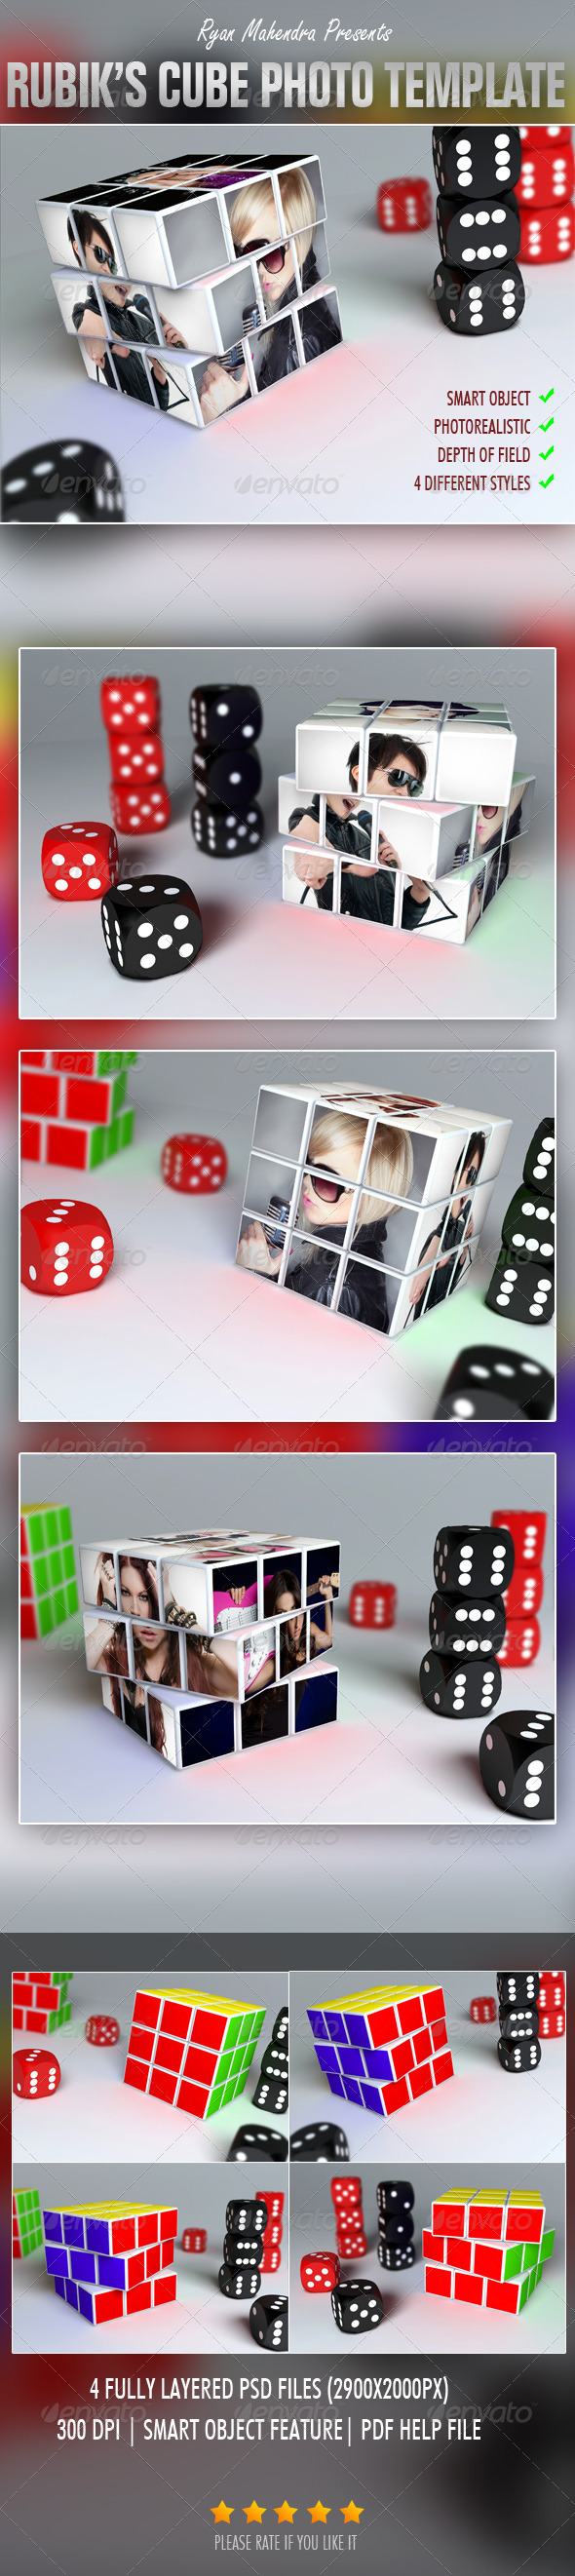 Rubik's Cube Photo Template - Photo Templates Graphics